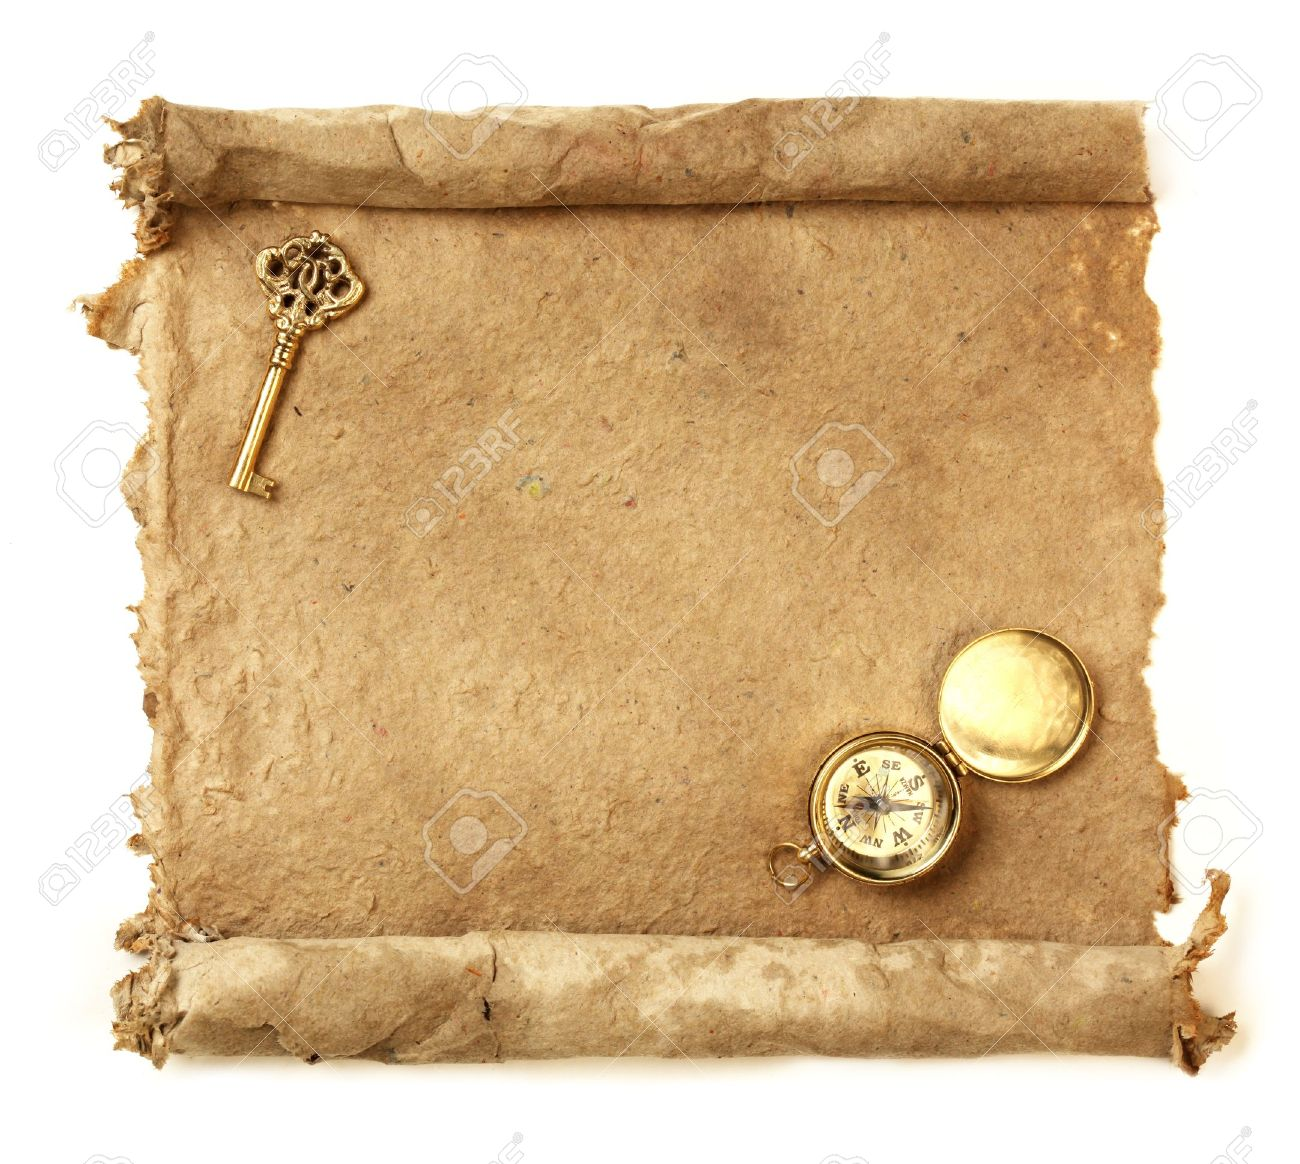 Handmade paper scroll with key and a compass Stock Photo - 9343668